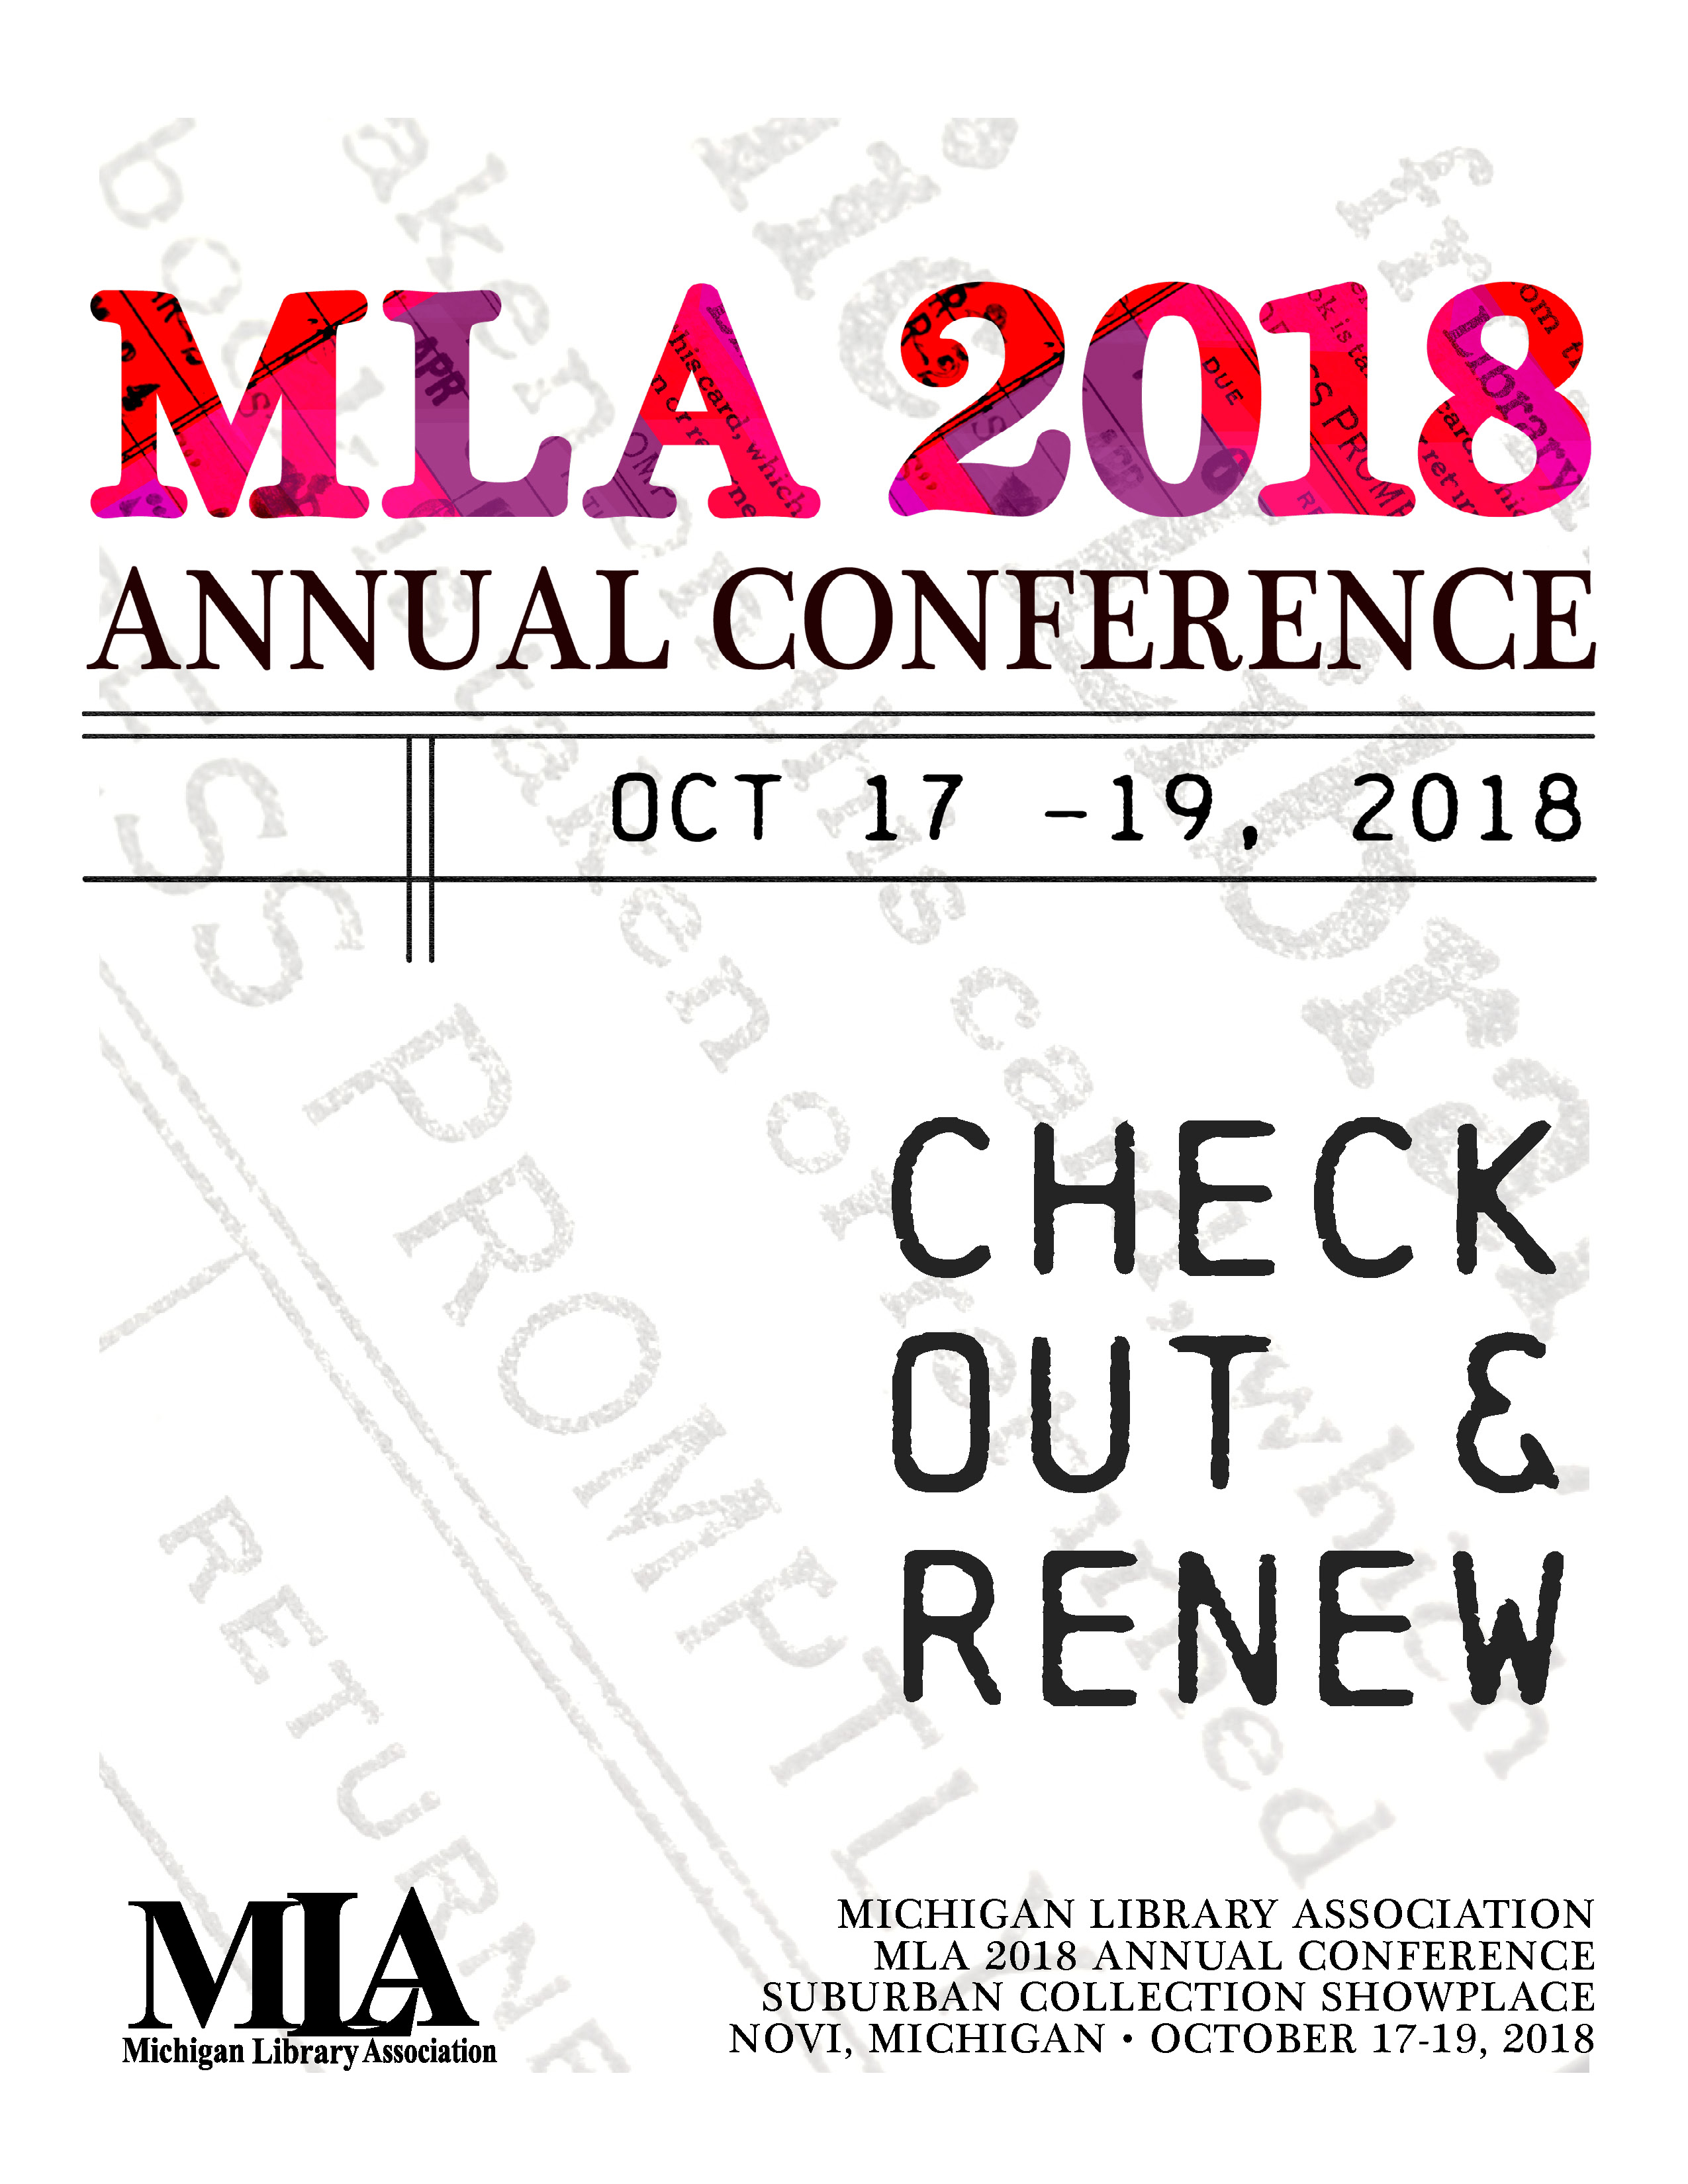 MLA 2018 Program Book Cover image - linked to program book pdf